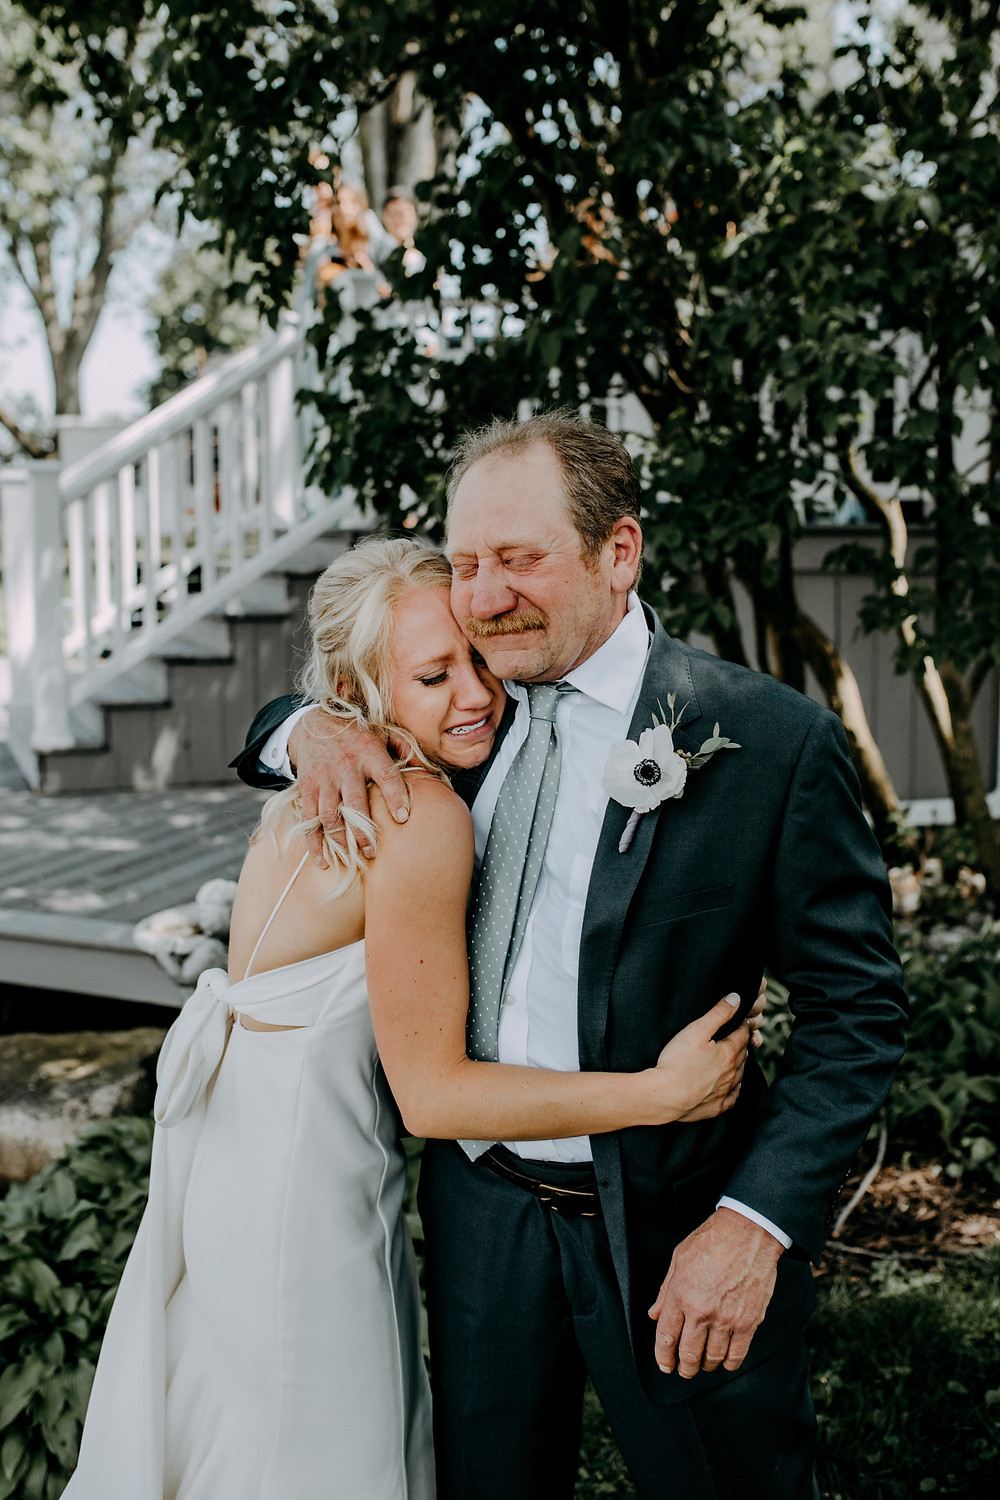 wedding photo by Little Blue Bird Photography at Highpoint Farms in Addison Michigan